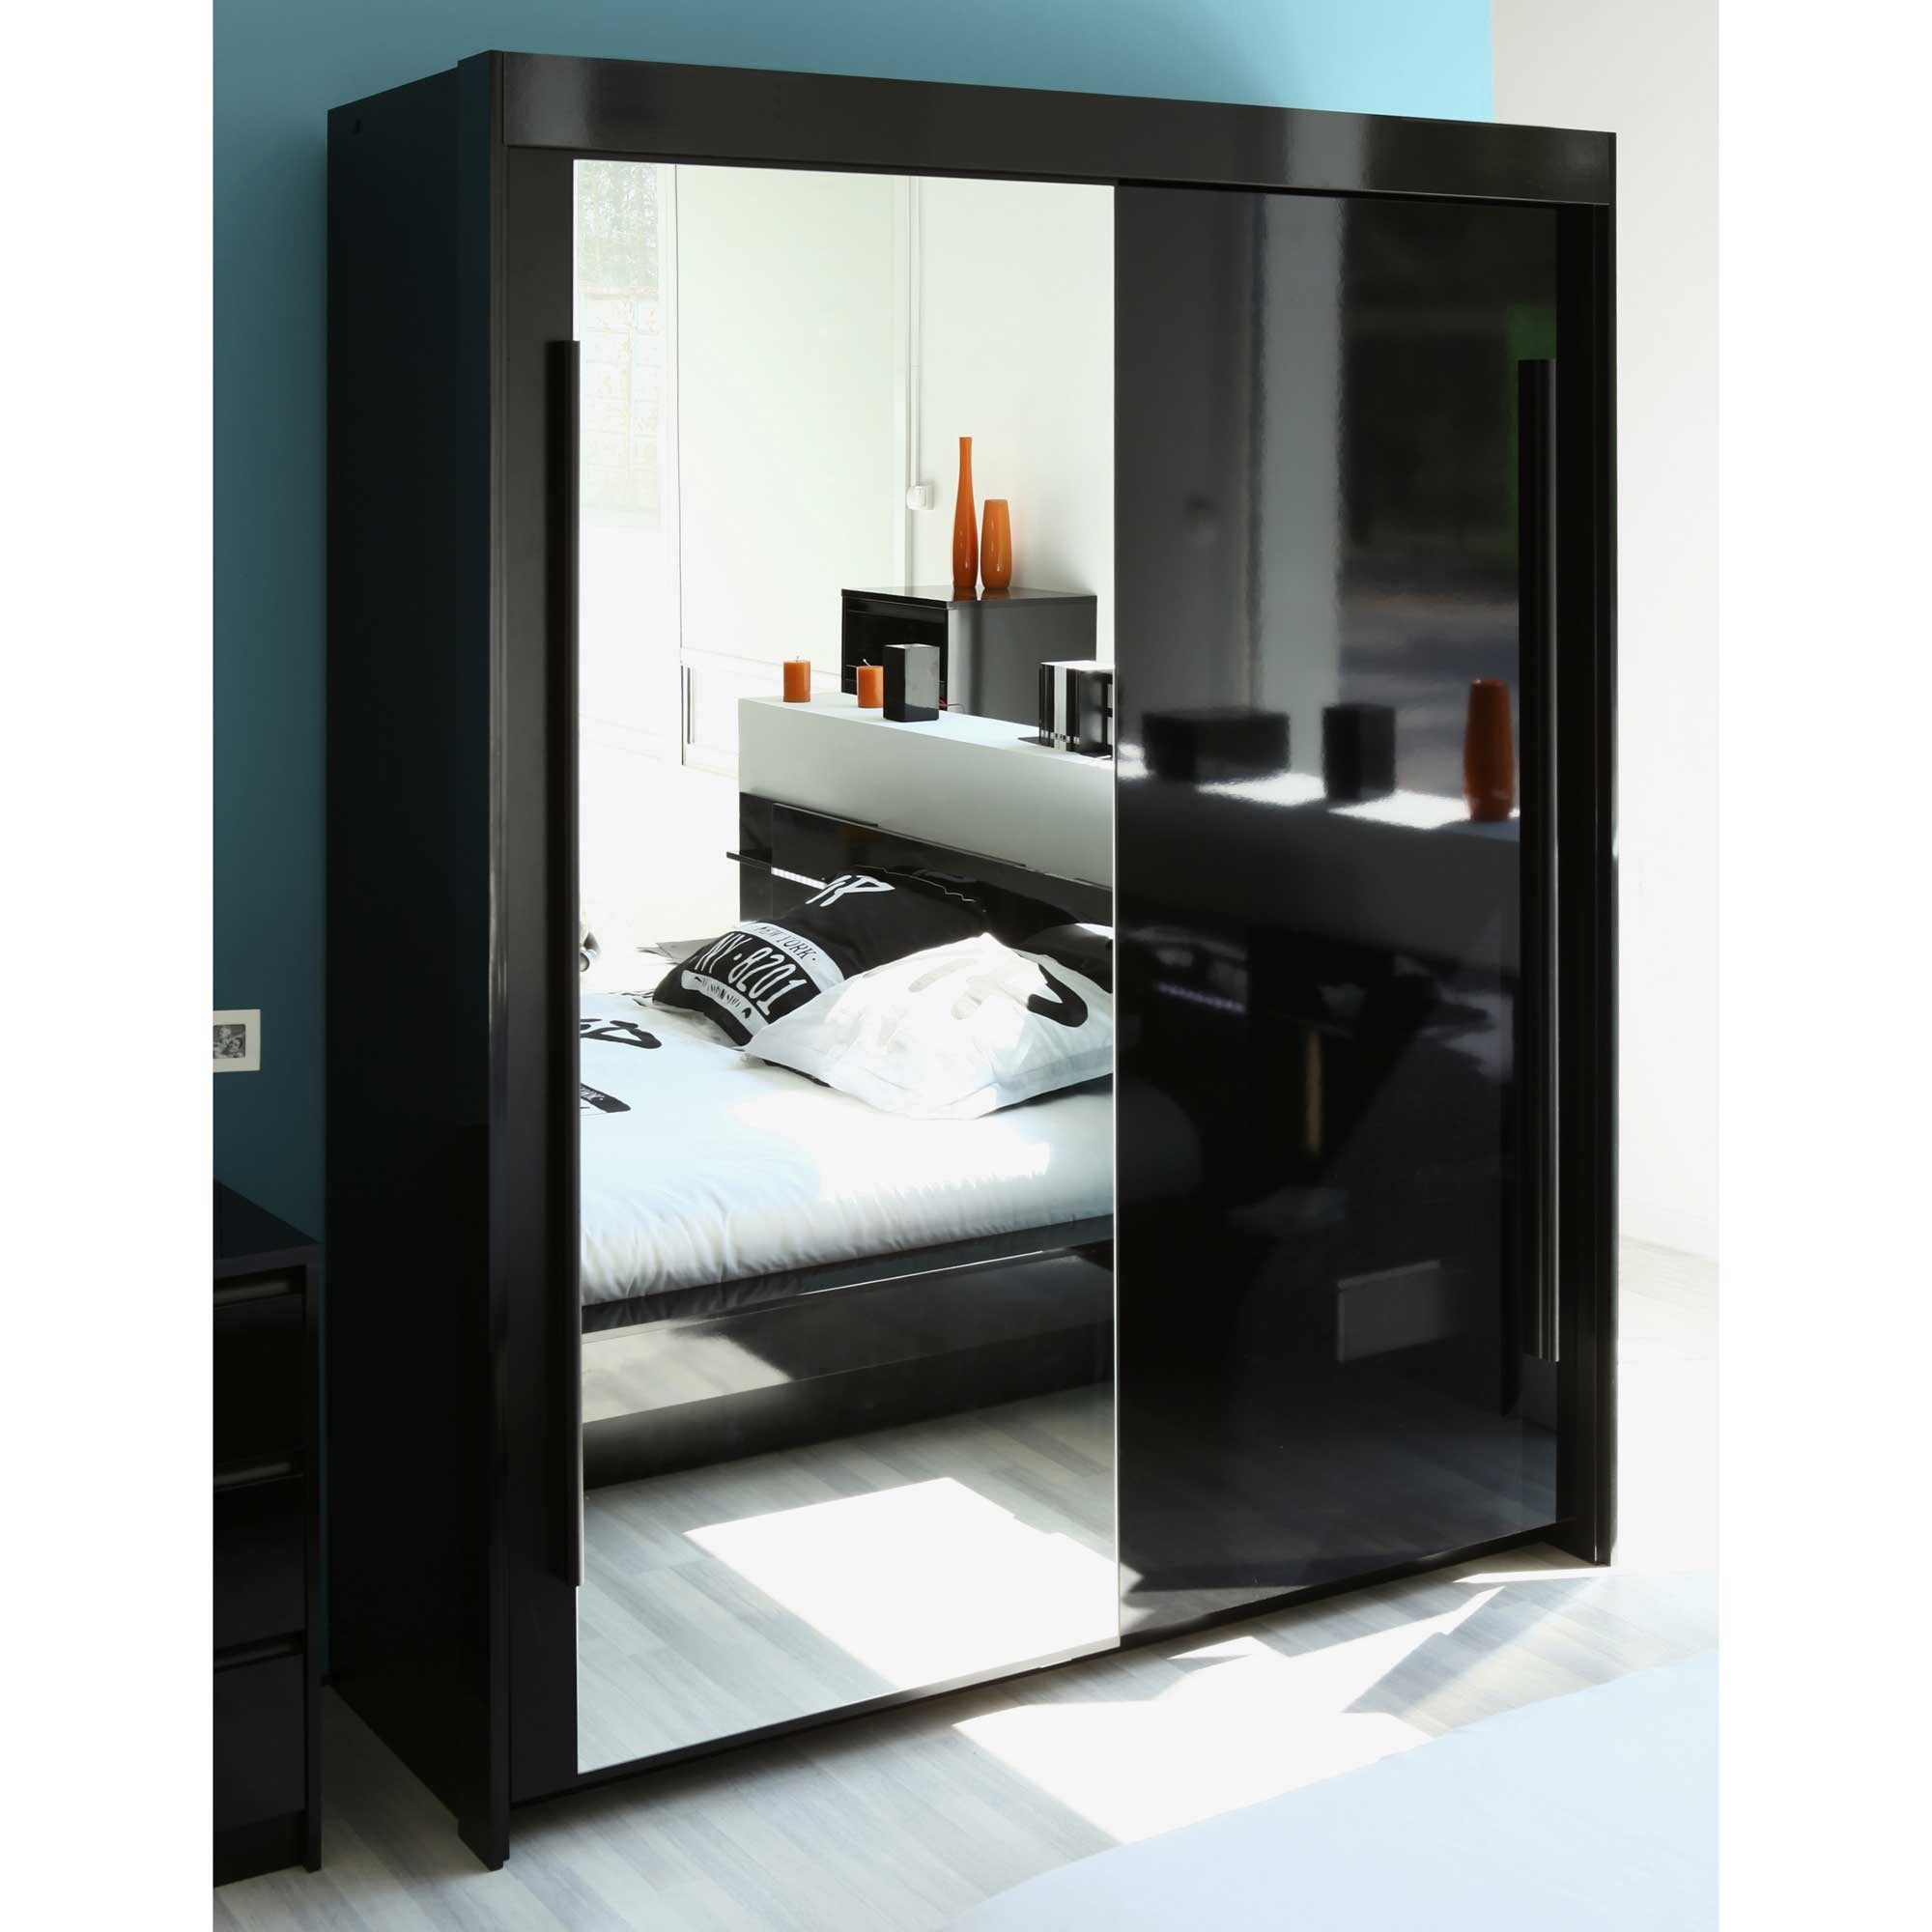 armoire avec miroir chambre armoire id es de d coration de maison gvnz2oonqa. Black Bedroom Furniture Sets. Home Design Ideas